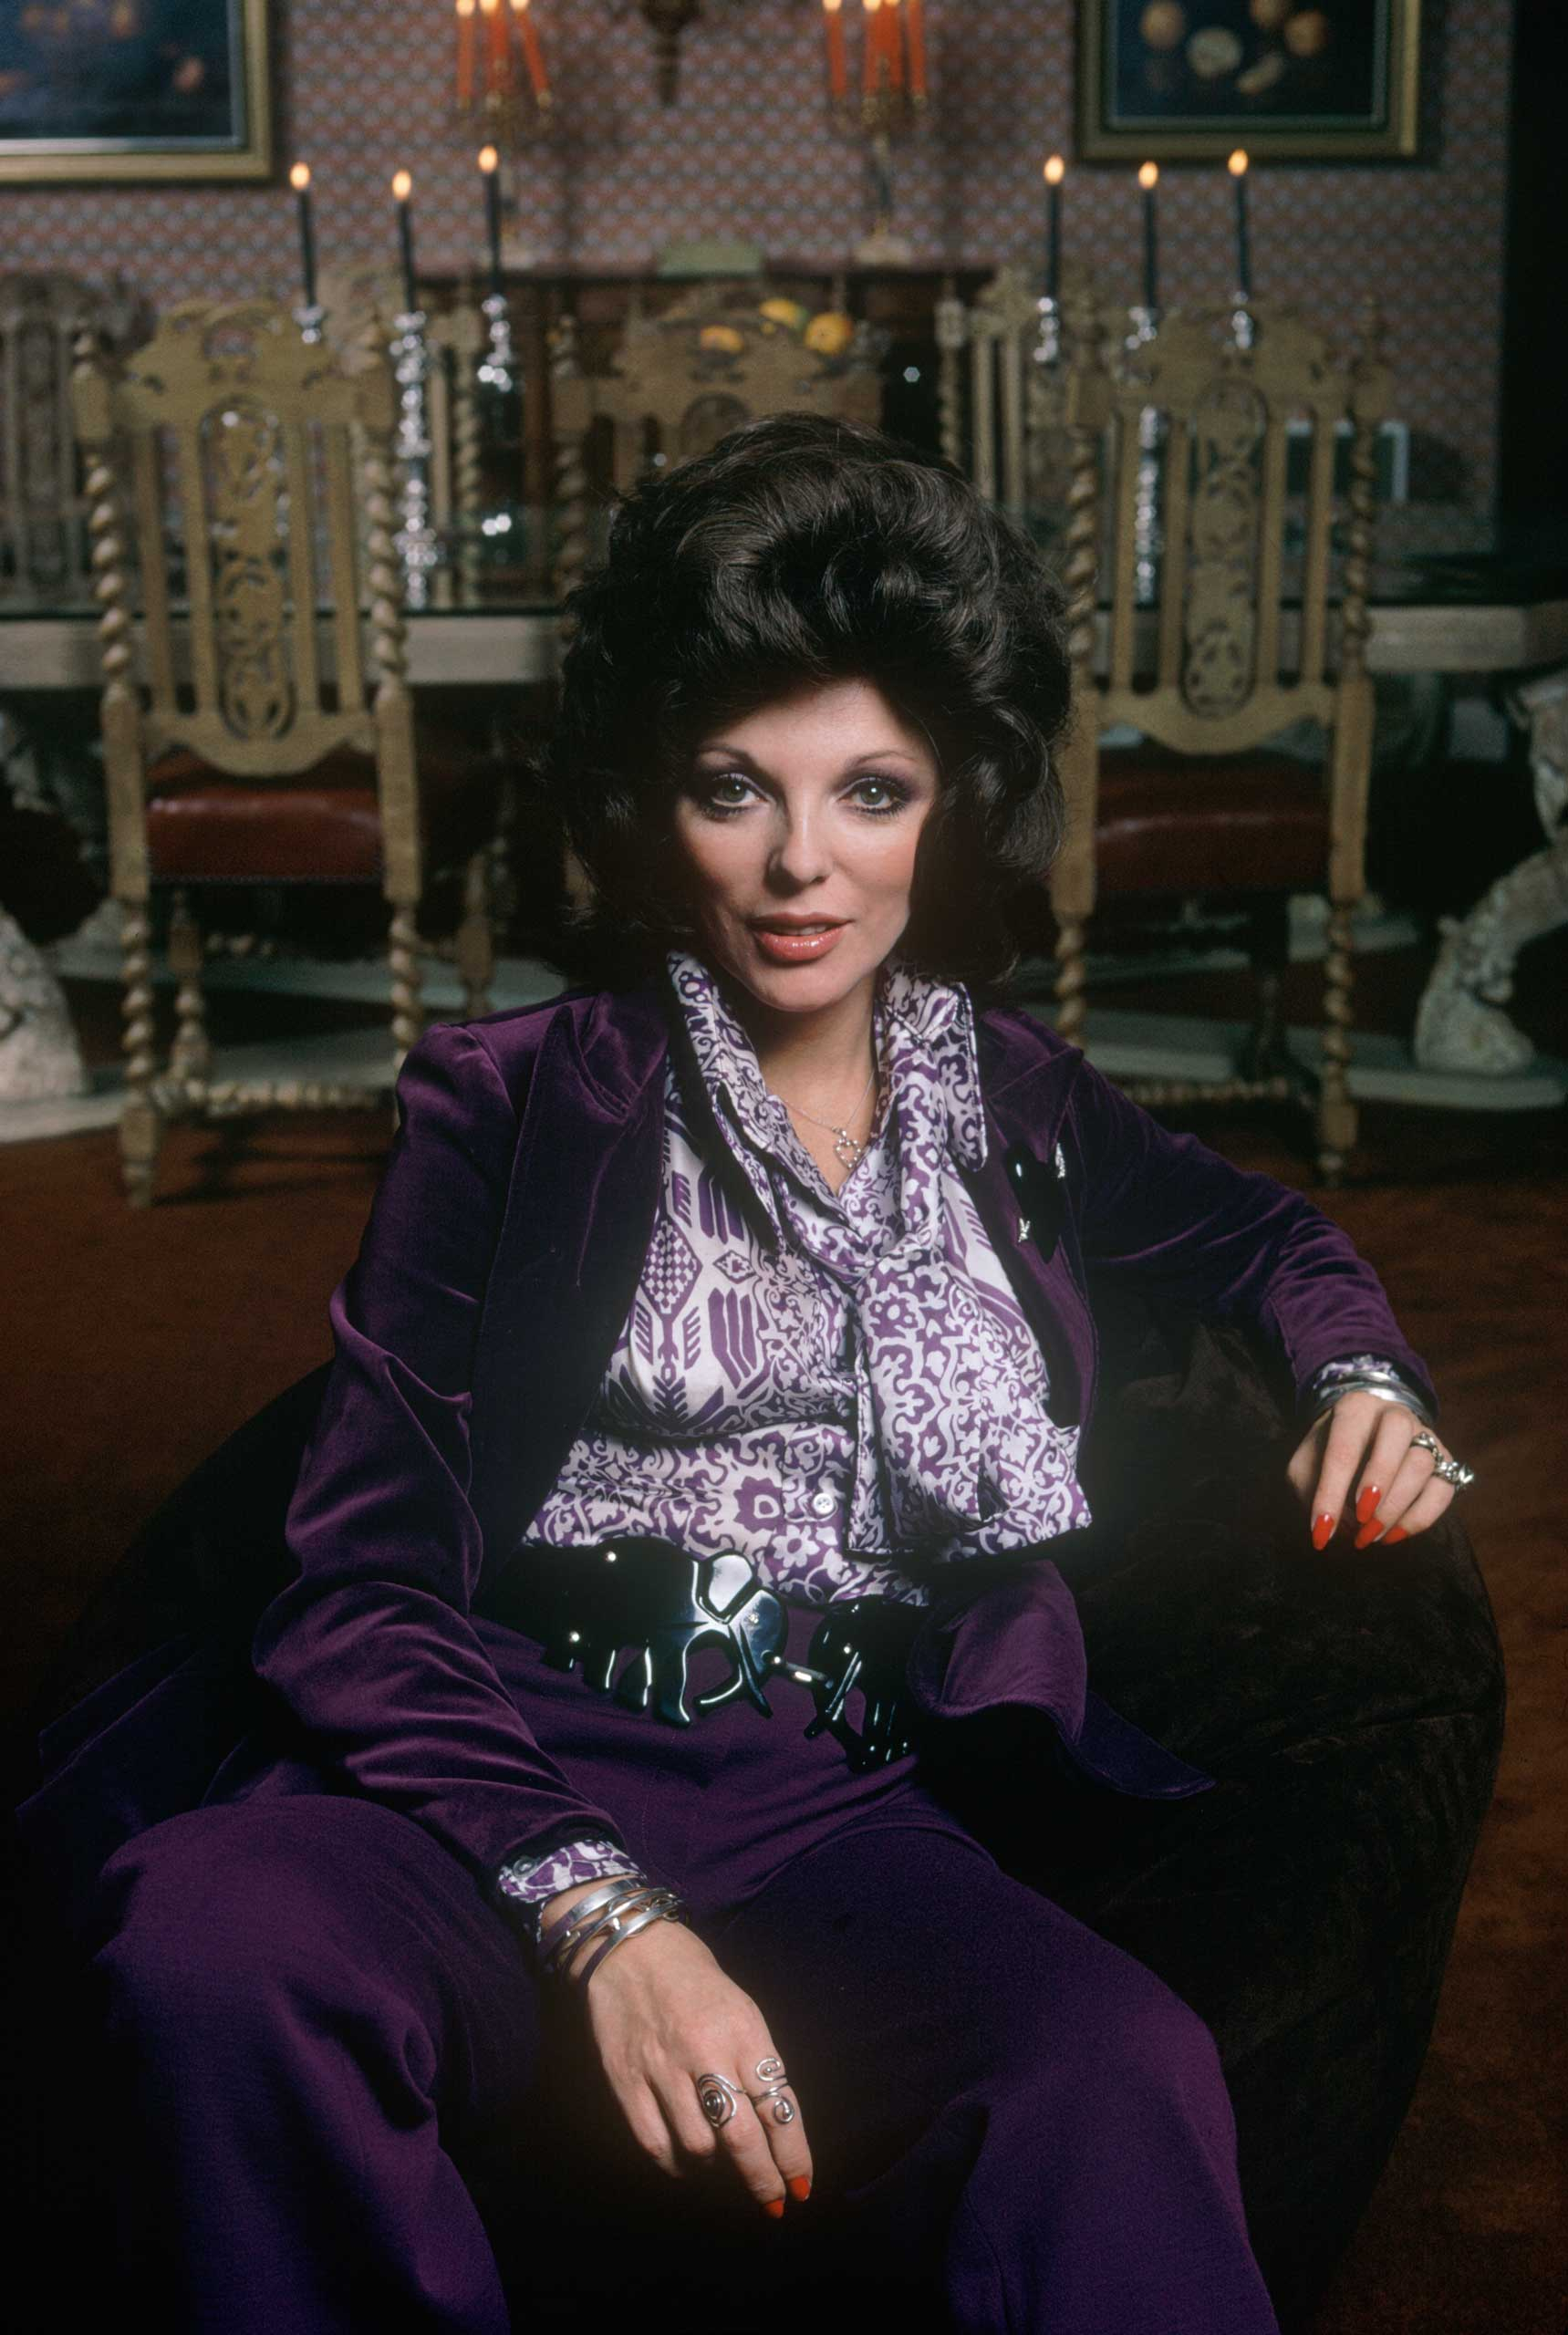 <b>Joan Collins</b>Photographed for TV Times in 1971.                                   The age-defying beauty invited the magazine for an exclusive look around her palatial home in the year she was divorced from second husband Tony Newley. Racy film romp <i>The Stud</i> and U.S. soap superstardom were still to come.